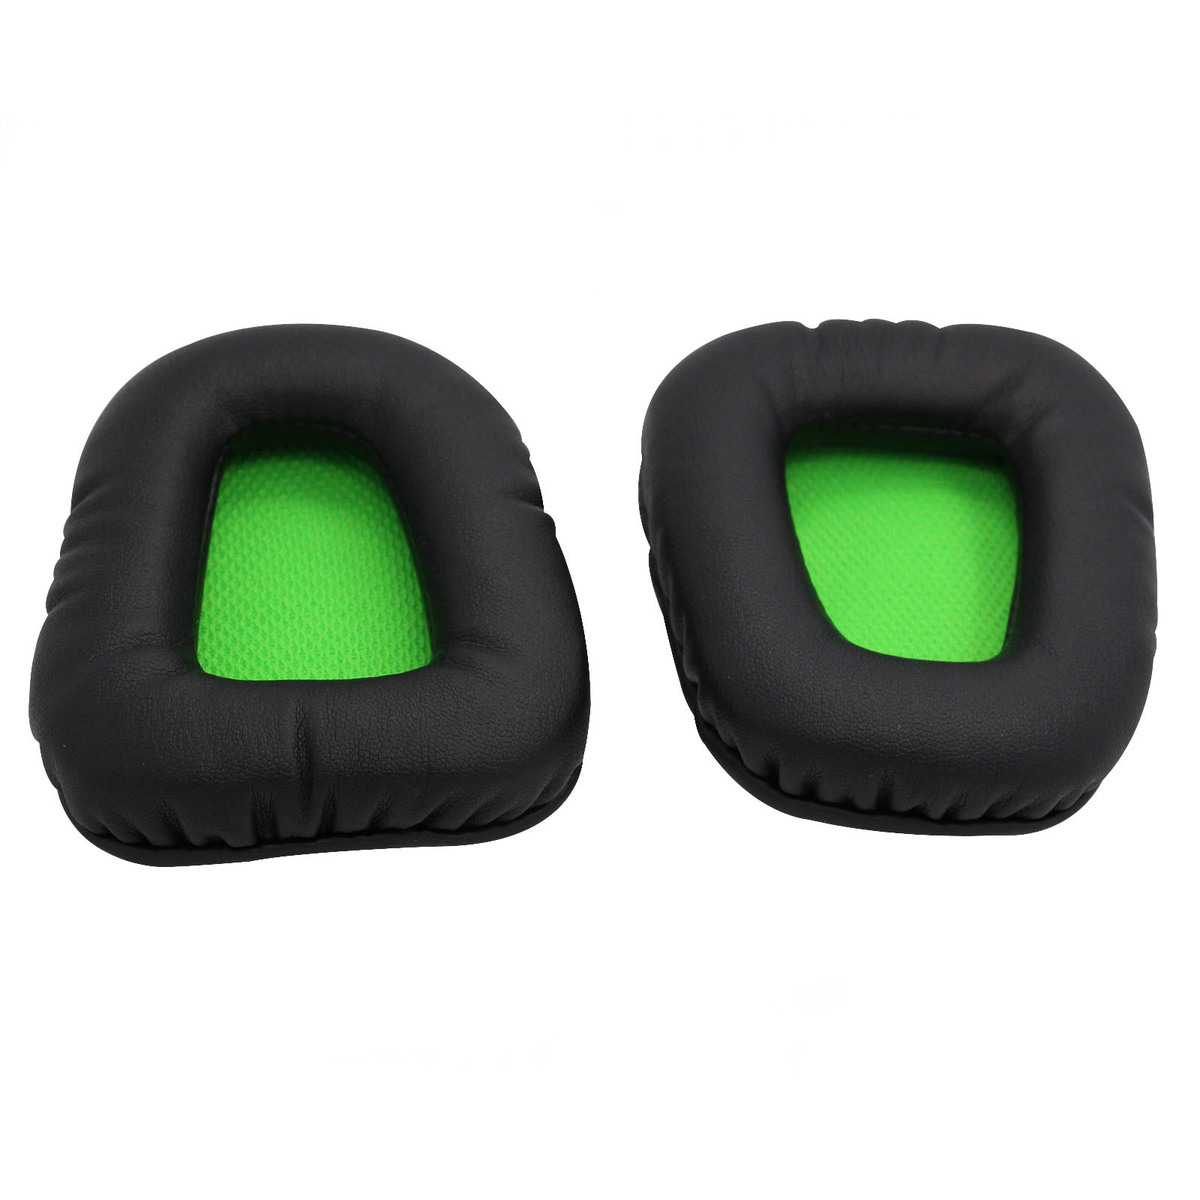 Replacement foam ear pads cushions for Razer Electra Earbuds Headphones Ear Pad in Earphone Accessories from Consumer Electronics